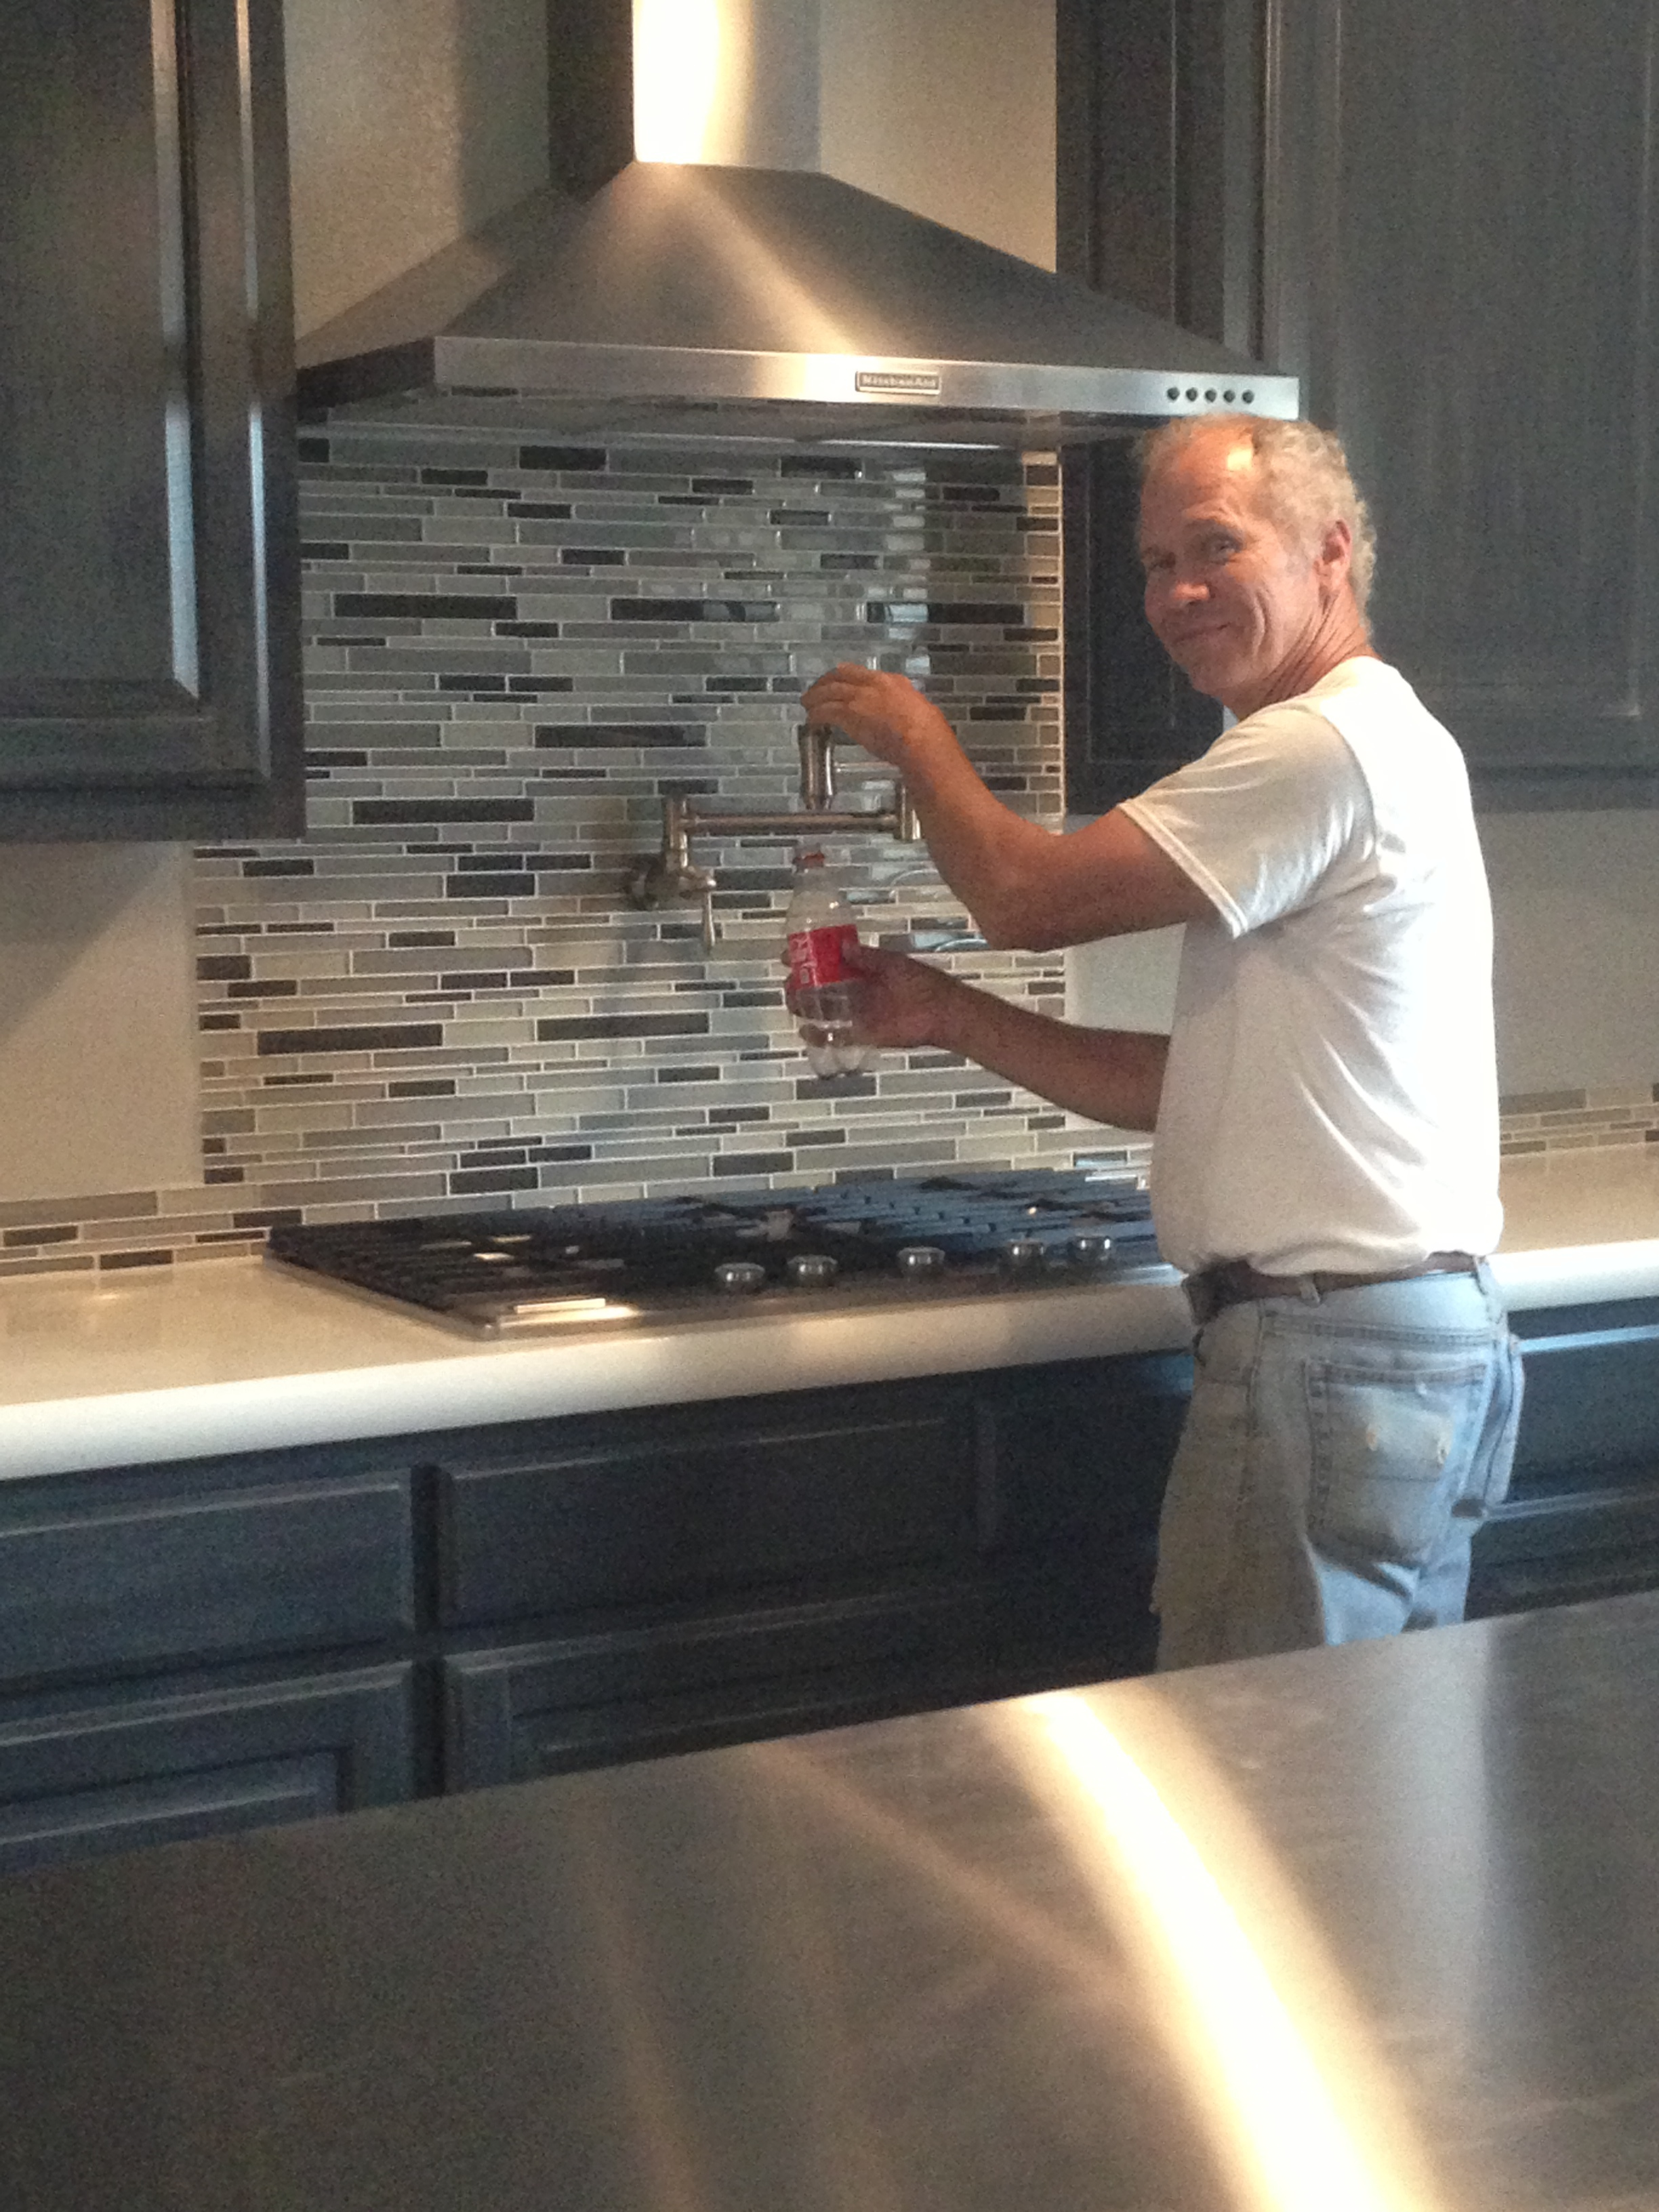 Speaking of awesome people........Padre is filling his bottle with the pot filler. Who knew, its not just for filling pasta pots.